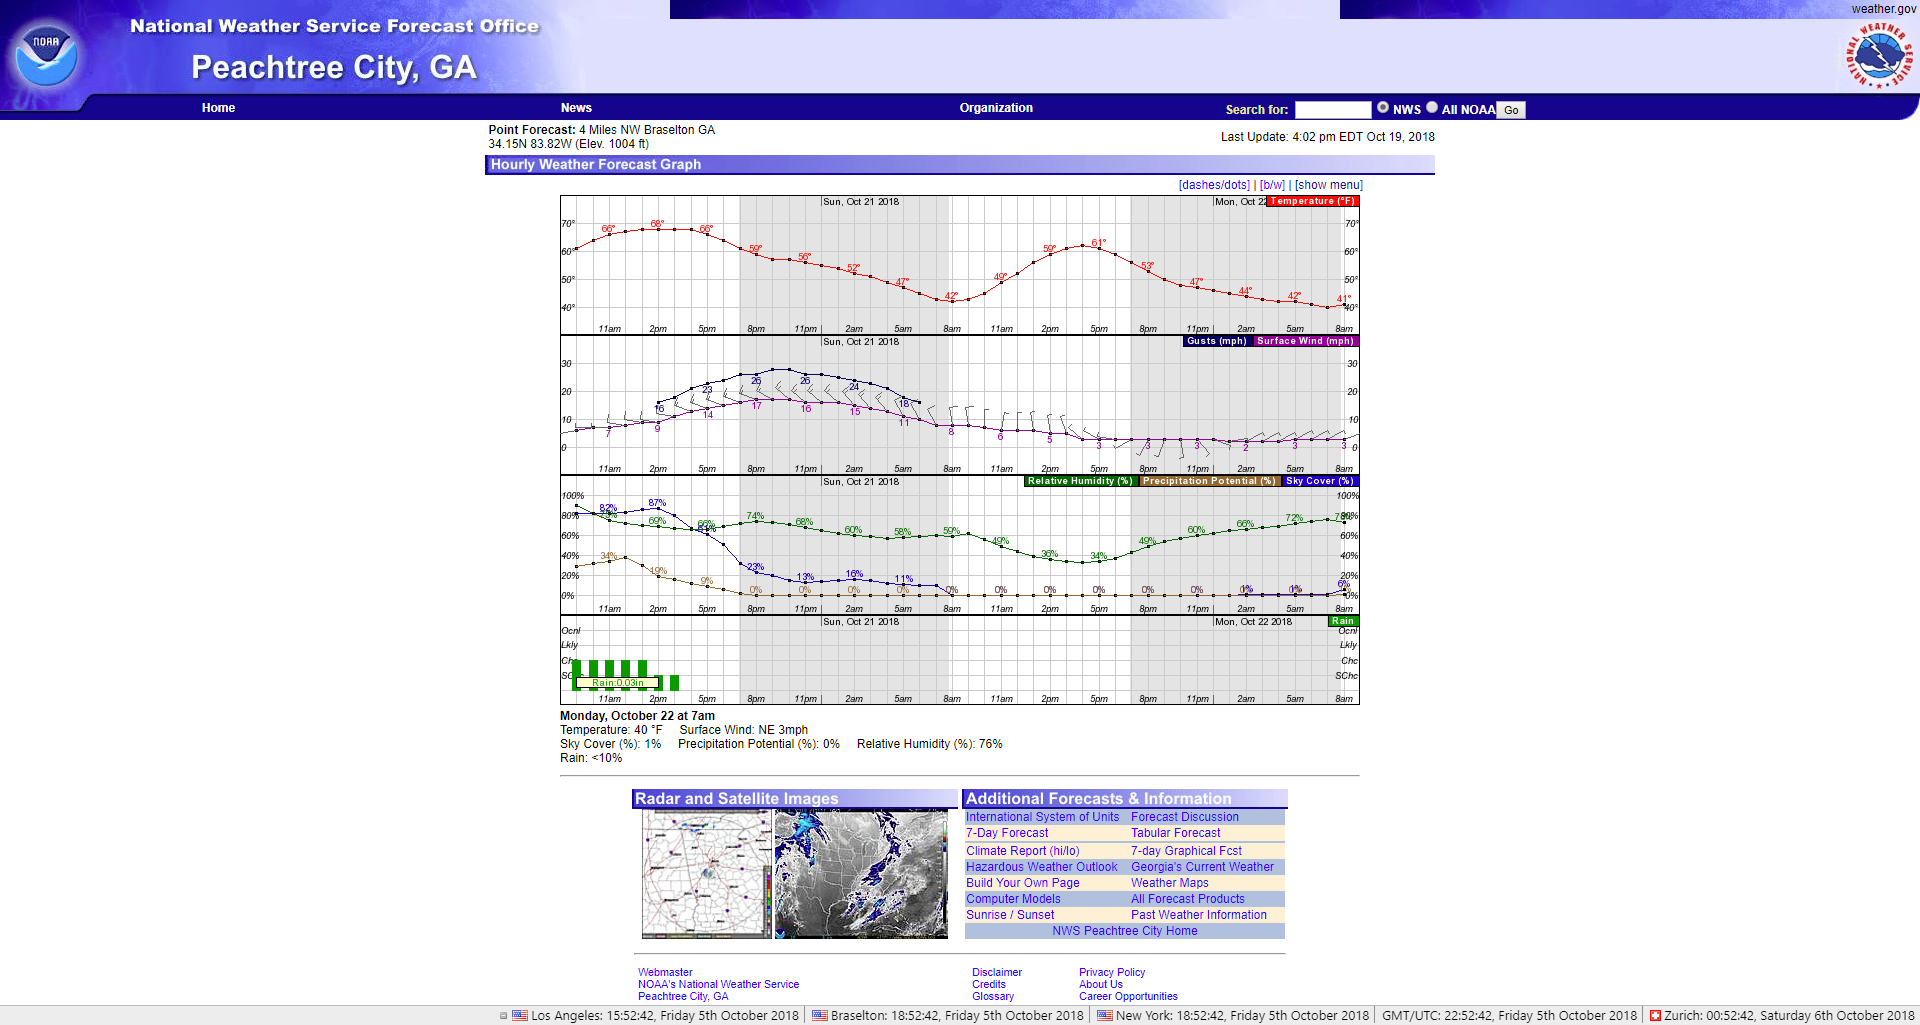 screencapture-forecast-weather-gov-MapClick-php-2018-10-20-00_52_42.png